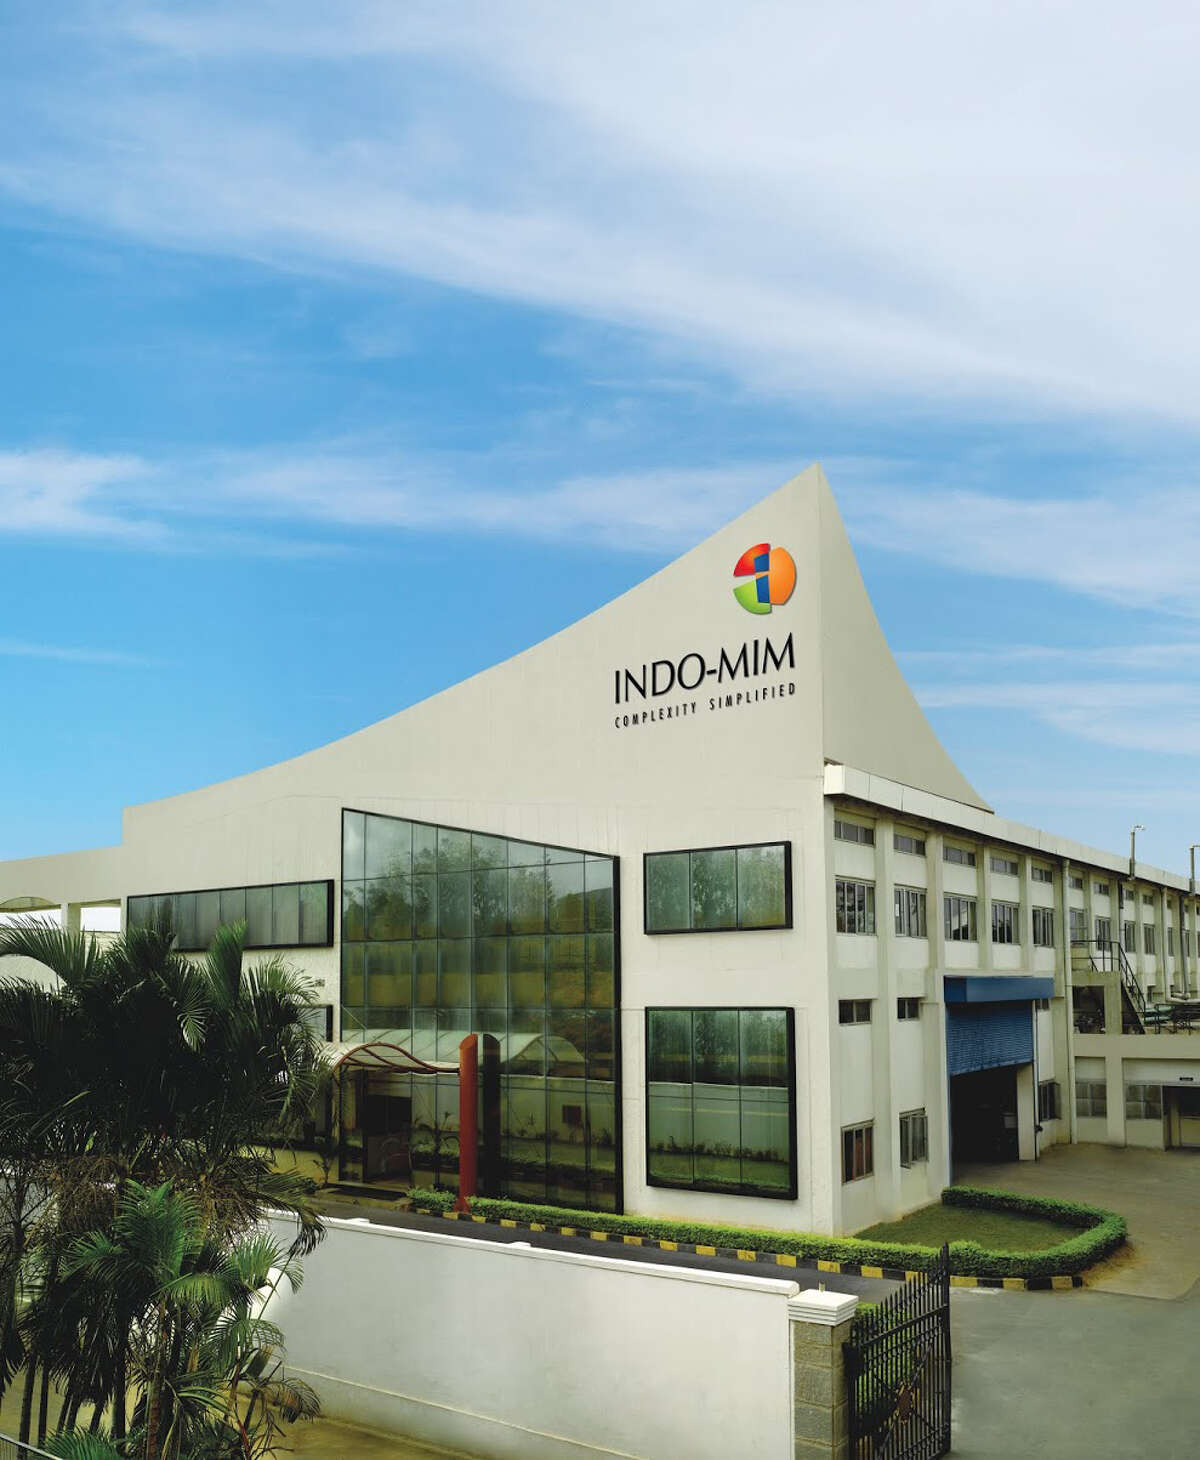 Indo-MIM has a global workforce of more than 2,000 employees and sales of over $100 million annually with locations around the world, including this one in Bangalore, India.